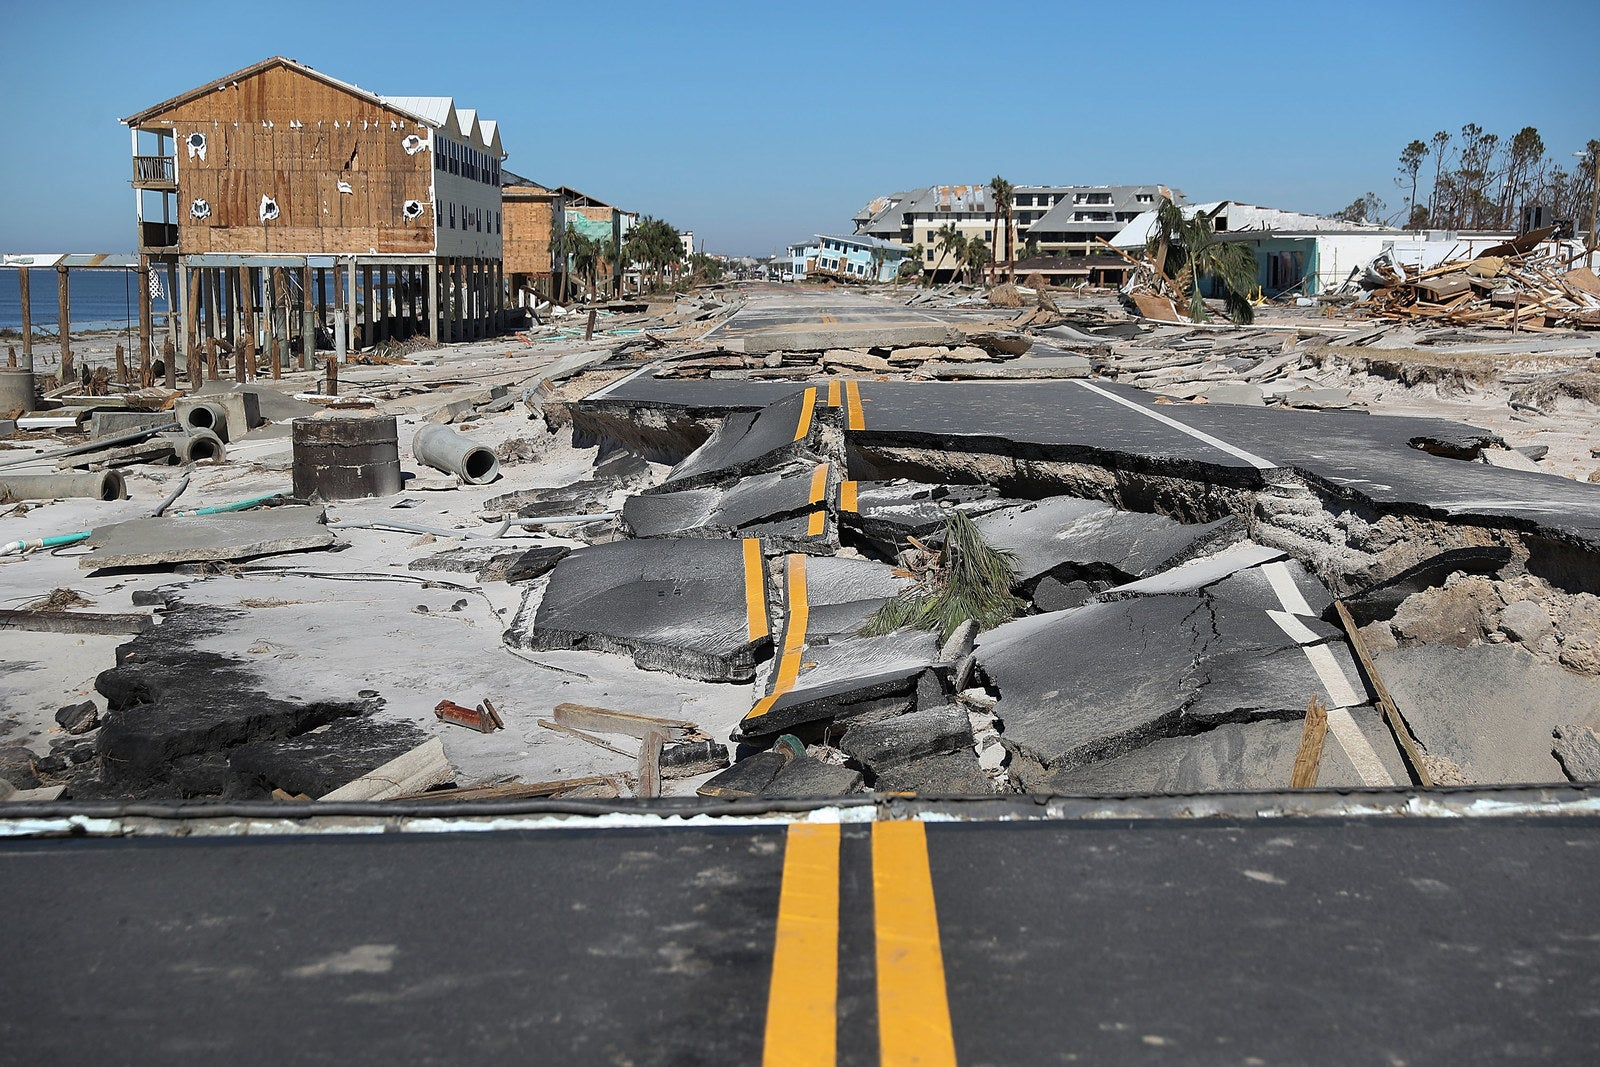 Route 98 in Mexico Beach, Florida, was decimated after Hurricane Michael passed through the area in October.